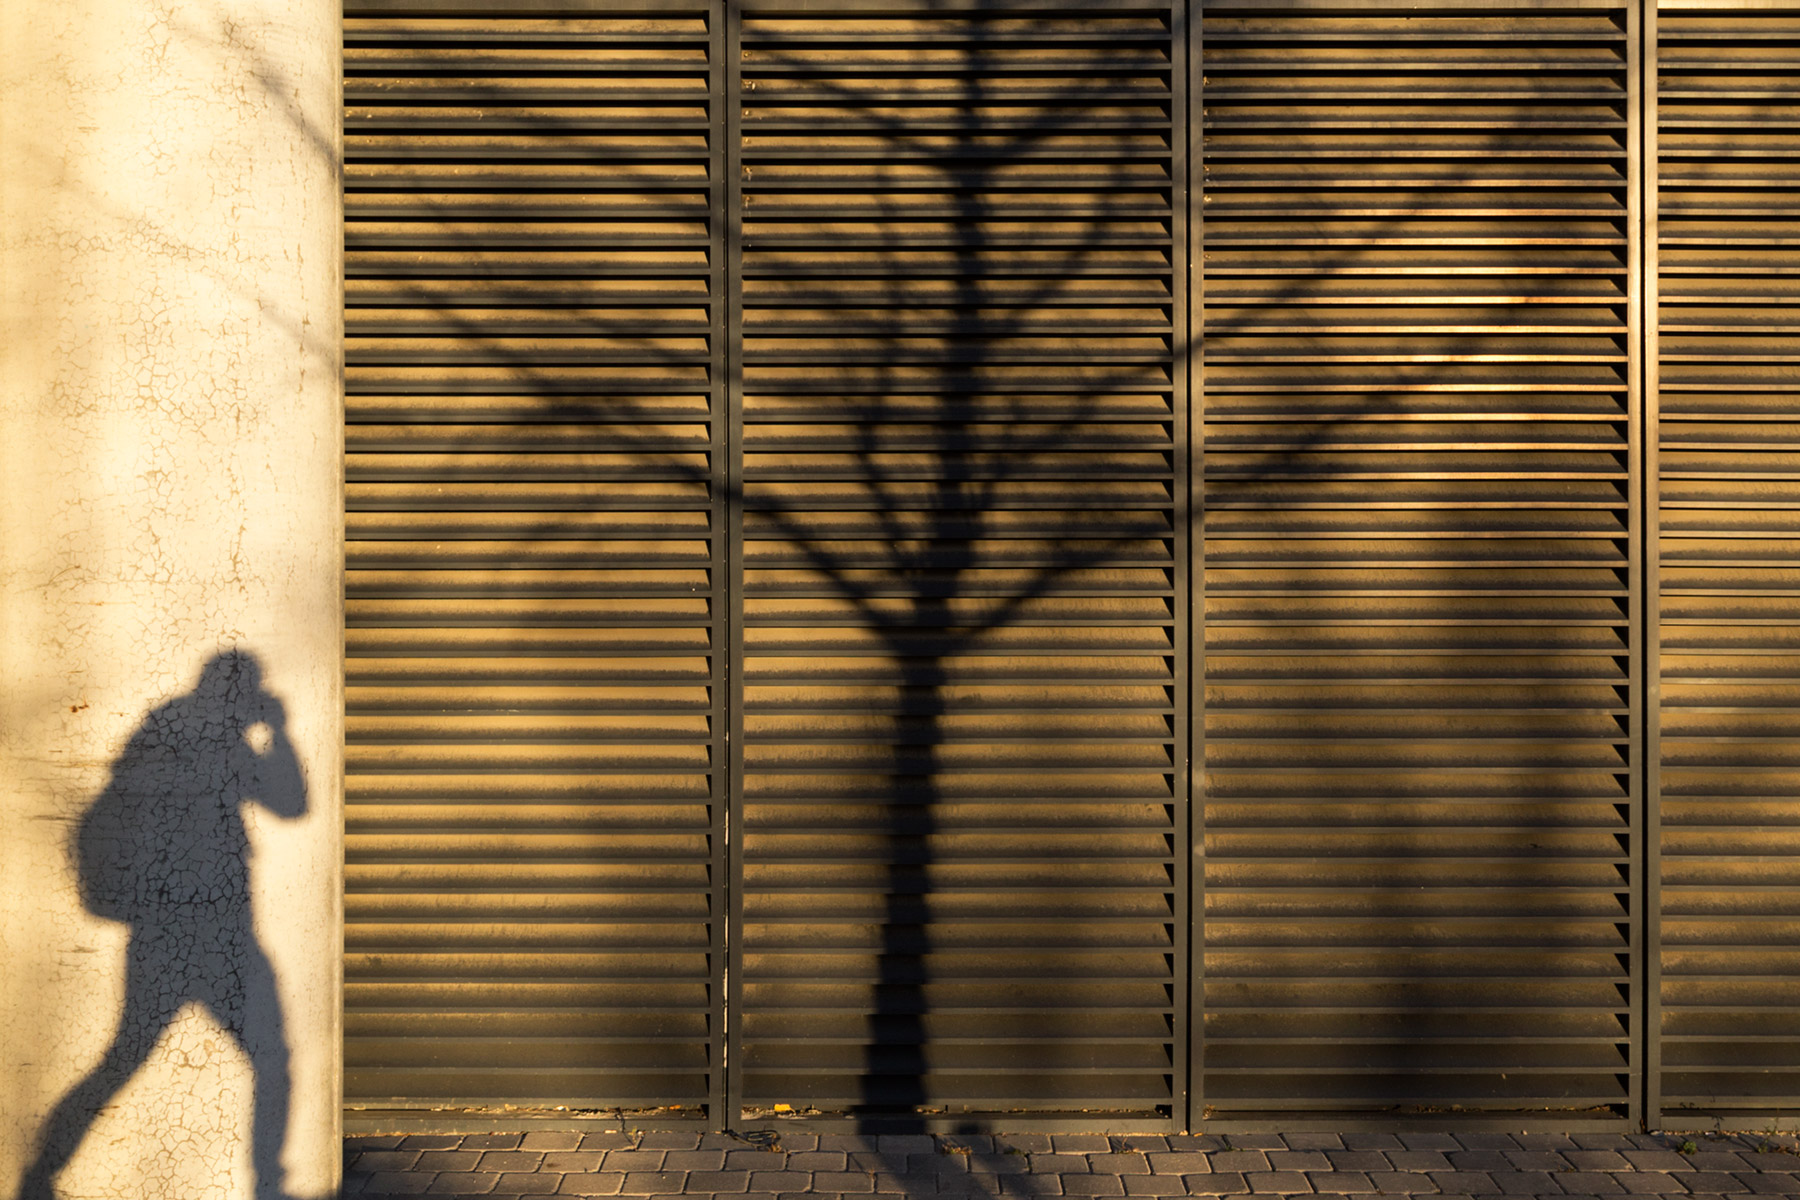 20151120. A shadow of me takes a picture of the shadow of a tree